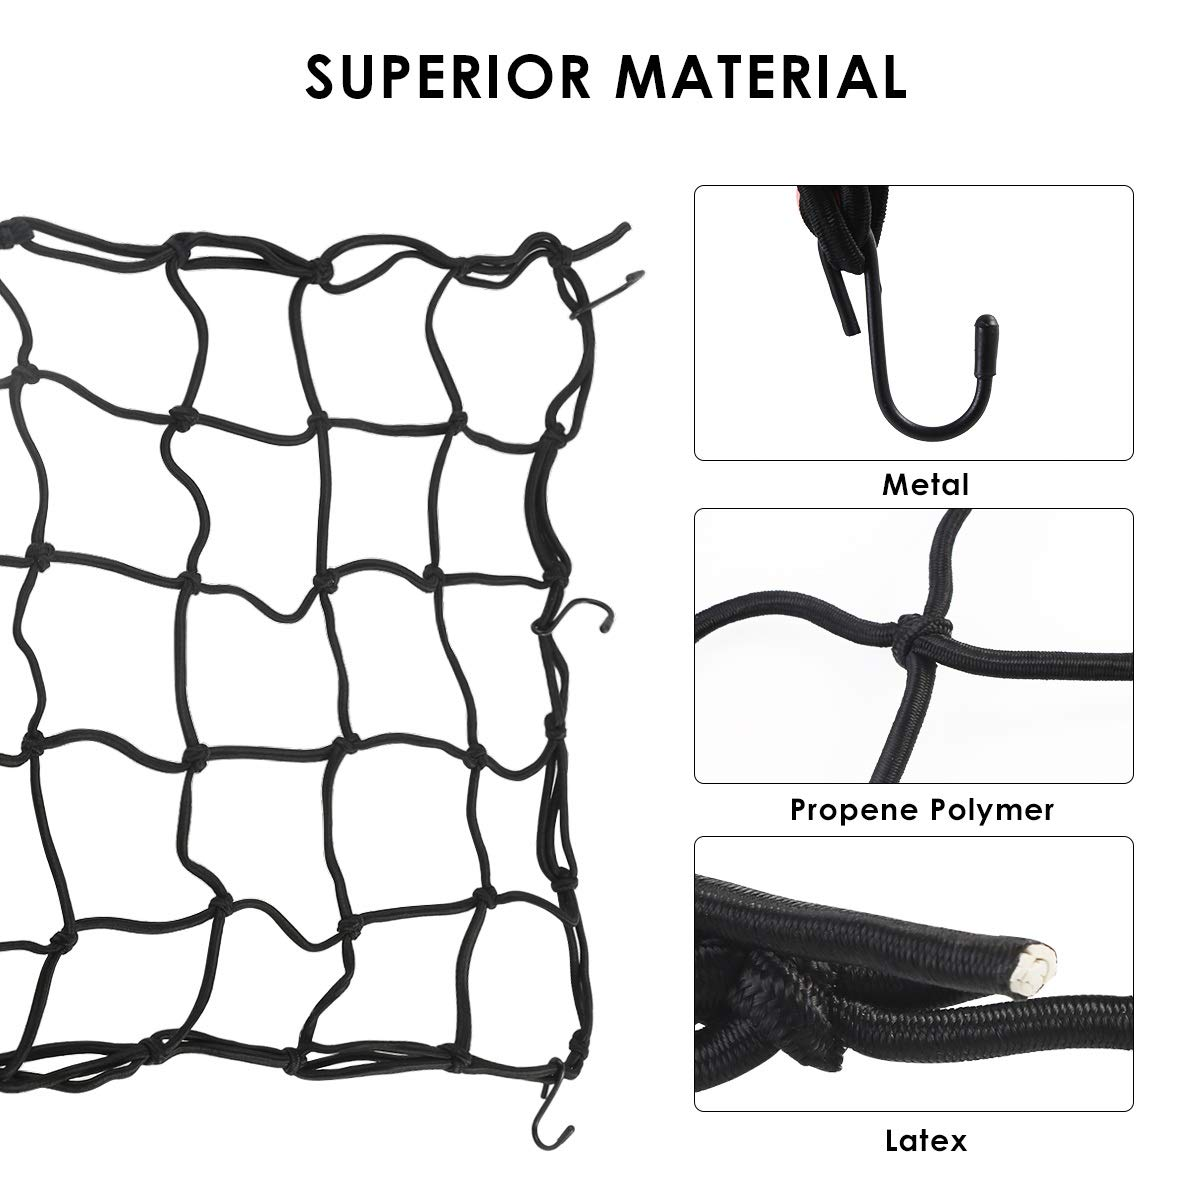 Yuniroom Motorcycle Cargo Net 1pc Black 15X15 Mesh Hold Bag Cargo Net W// 6 Removable Adjustable Hooks for Tight Covering for Motorcycle Car Bike